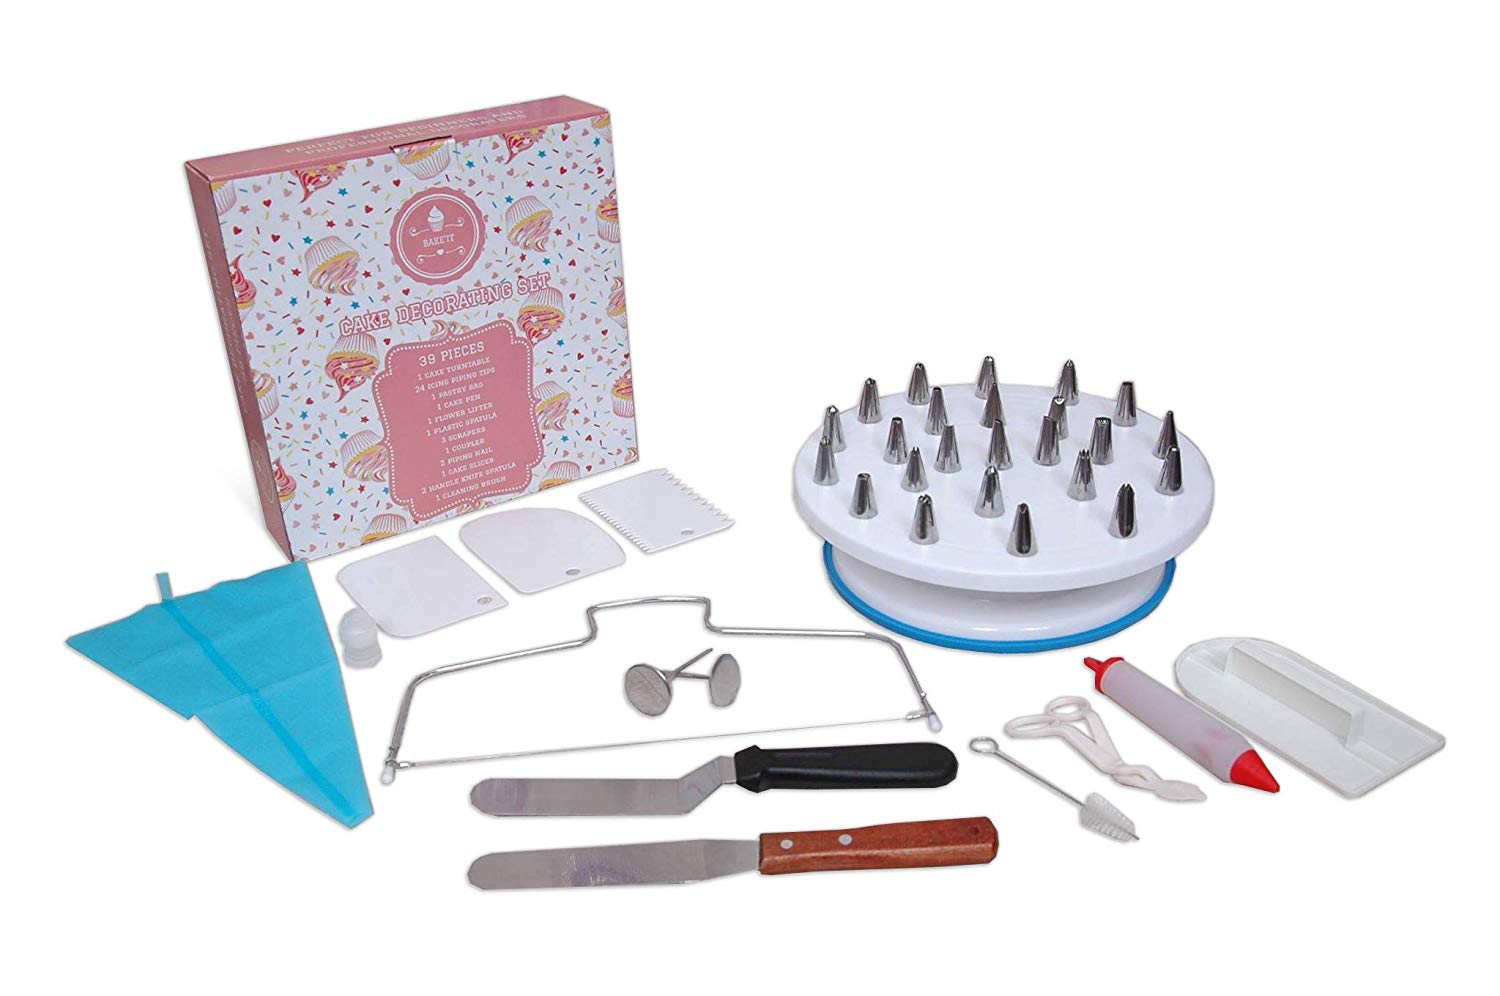 Cake Decorating Supplies By Bake'it | Cake Decorating Kit Includes: Rotating Cake Turntable, Numbered Easy to use Icing Tips, Reusable Silicone Pastry Bag, Cake Leveler and other Cake Decorating Tools